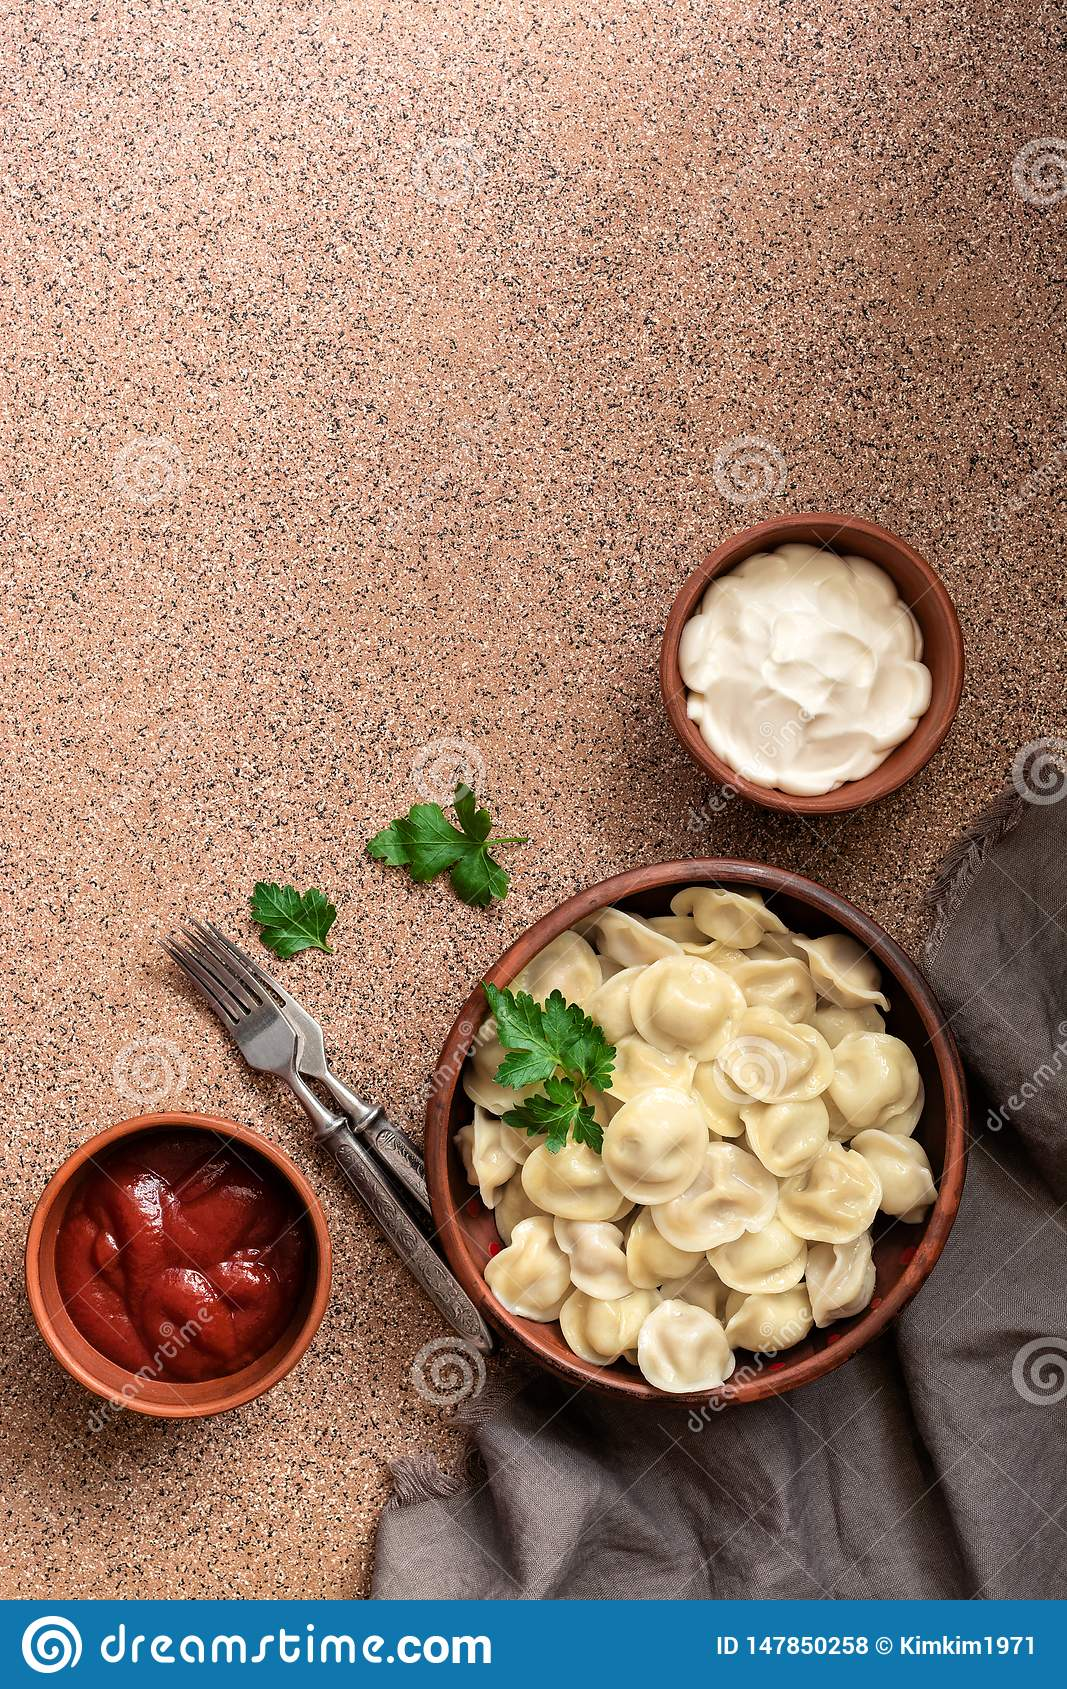 Traditional Russian food dumplings with meat served in a clay bowl with sour cream and tomato sauce. Top view, copy space